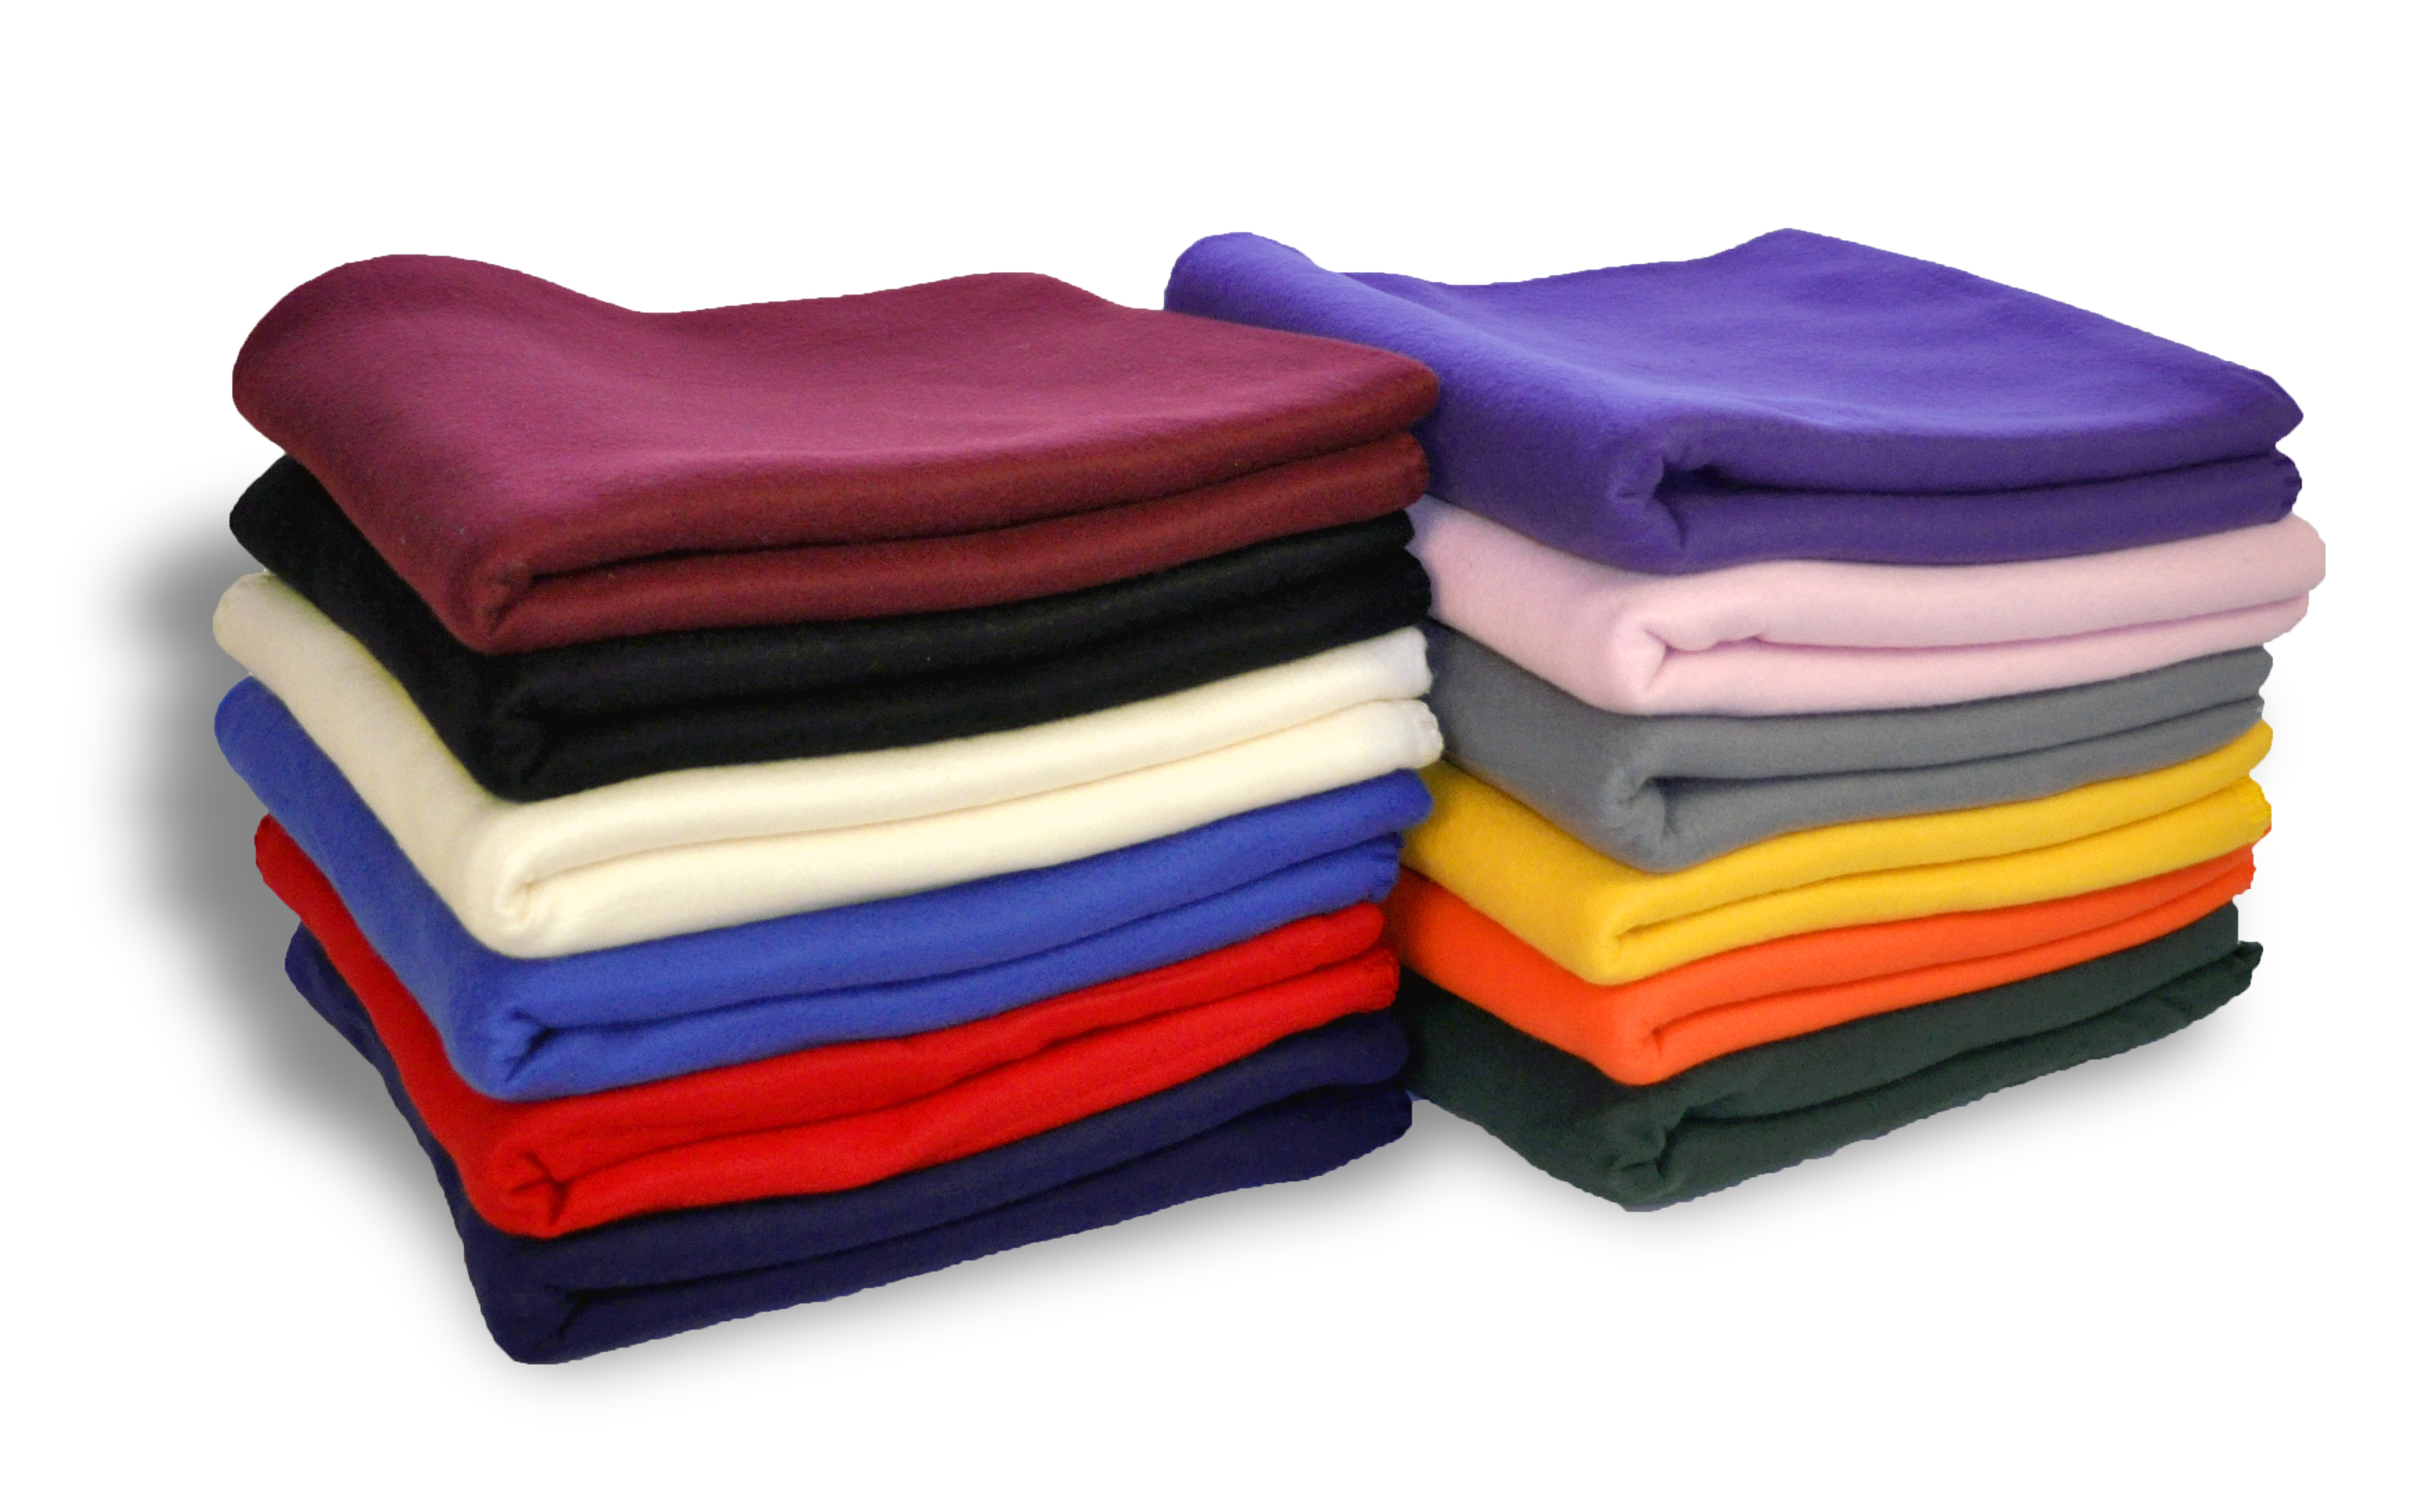 100% Polyester Promotional Fleece 50 x 60 Pill Resistant, 200 gsm 36 pcs per case